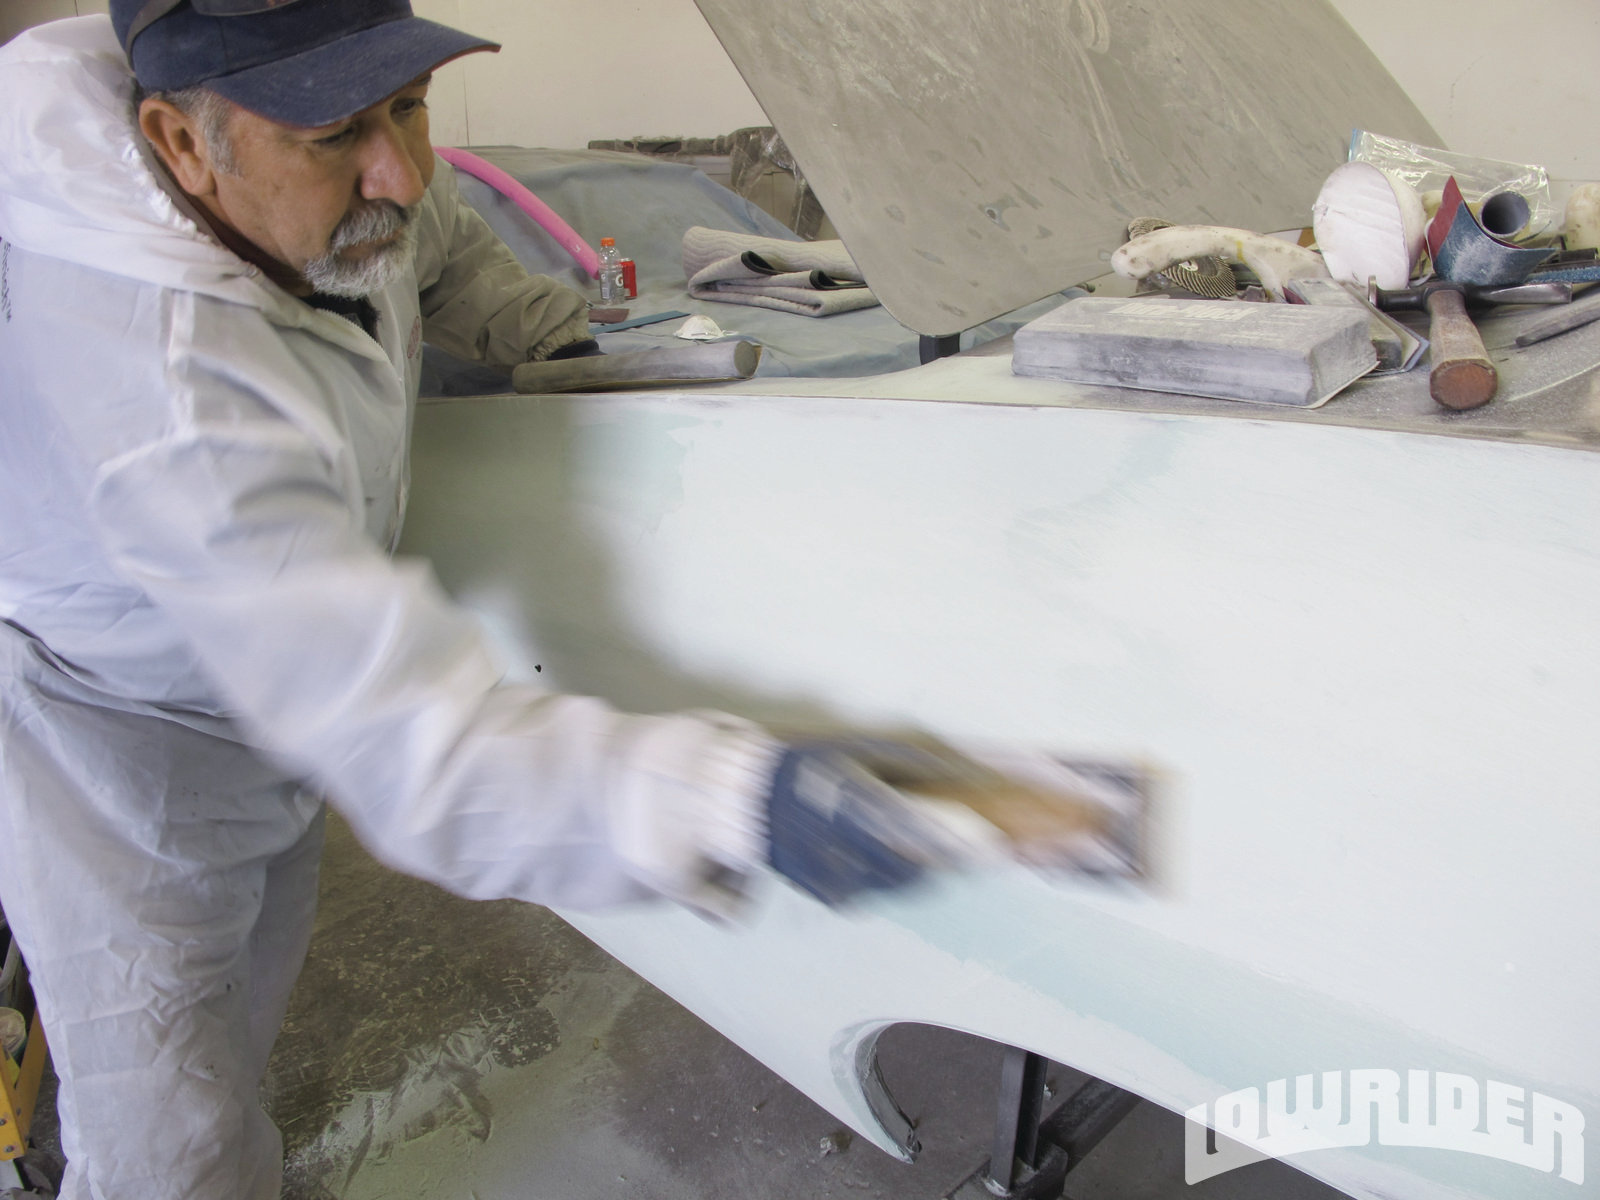 <strong>23</strong>. With bodywork, it's all about patience and the Coronel proved it after sanding on this section for hours.